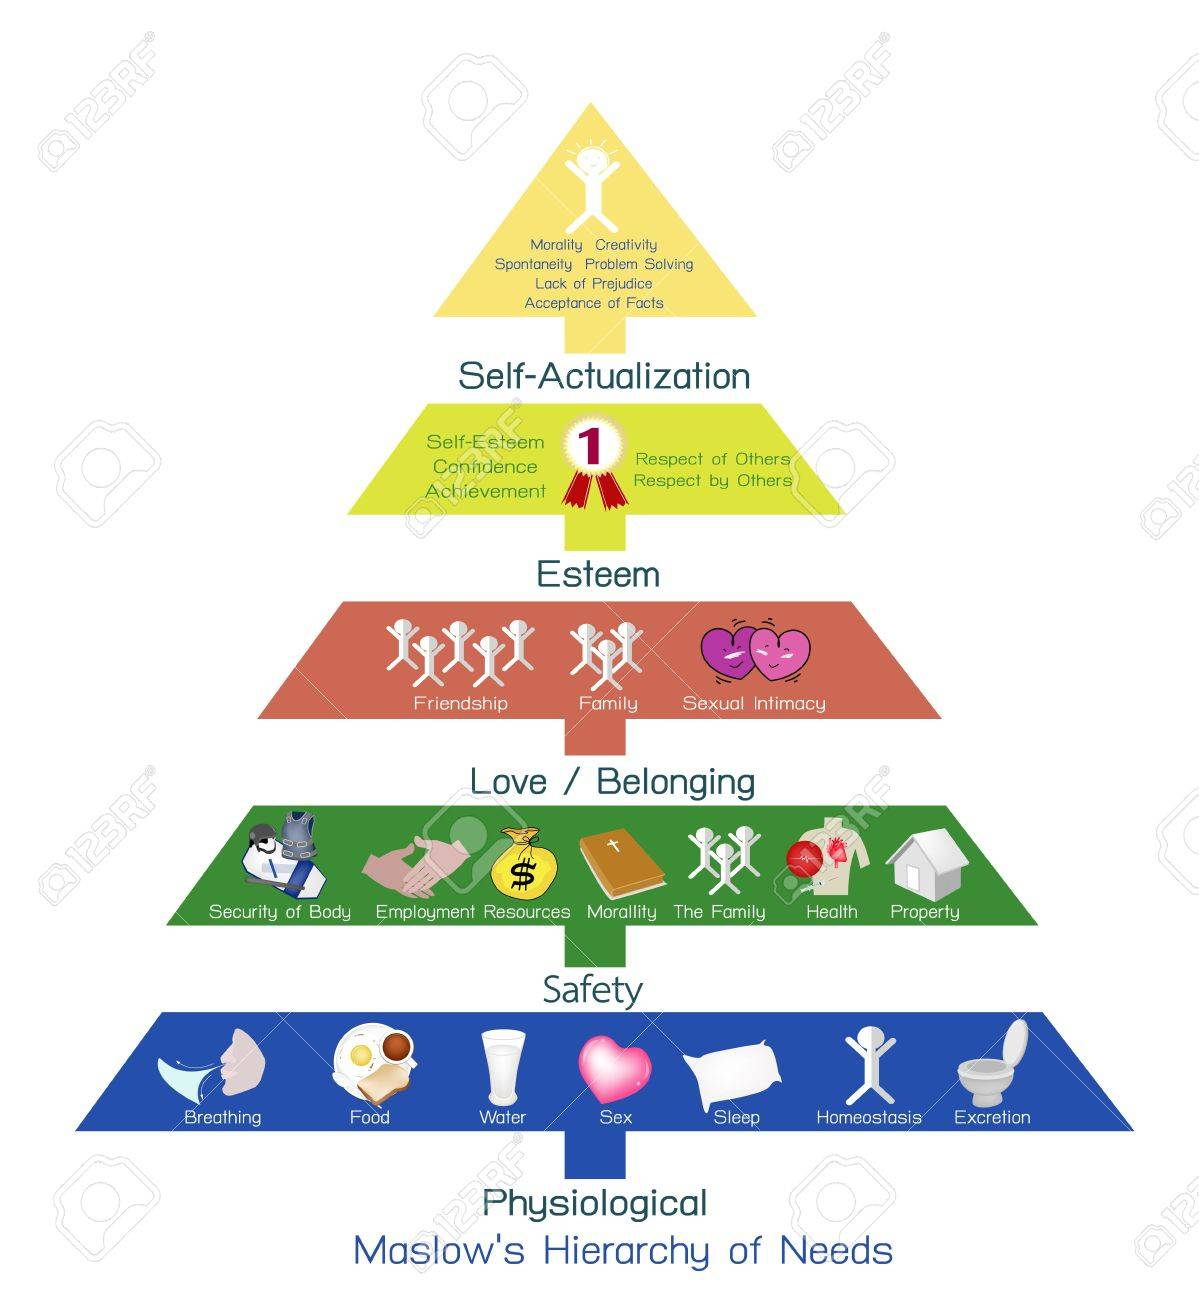 68351651-social-and-psychological-concepts-illustration-of-maslow-pyramid-chart-with-five-levels-hierarchy-of.jpg